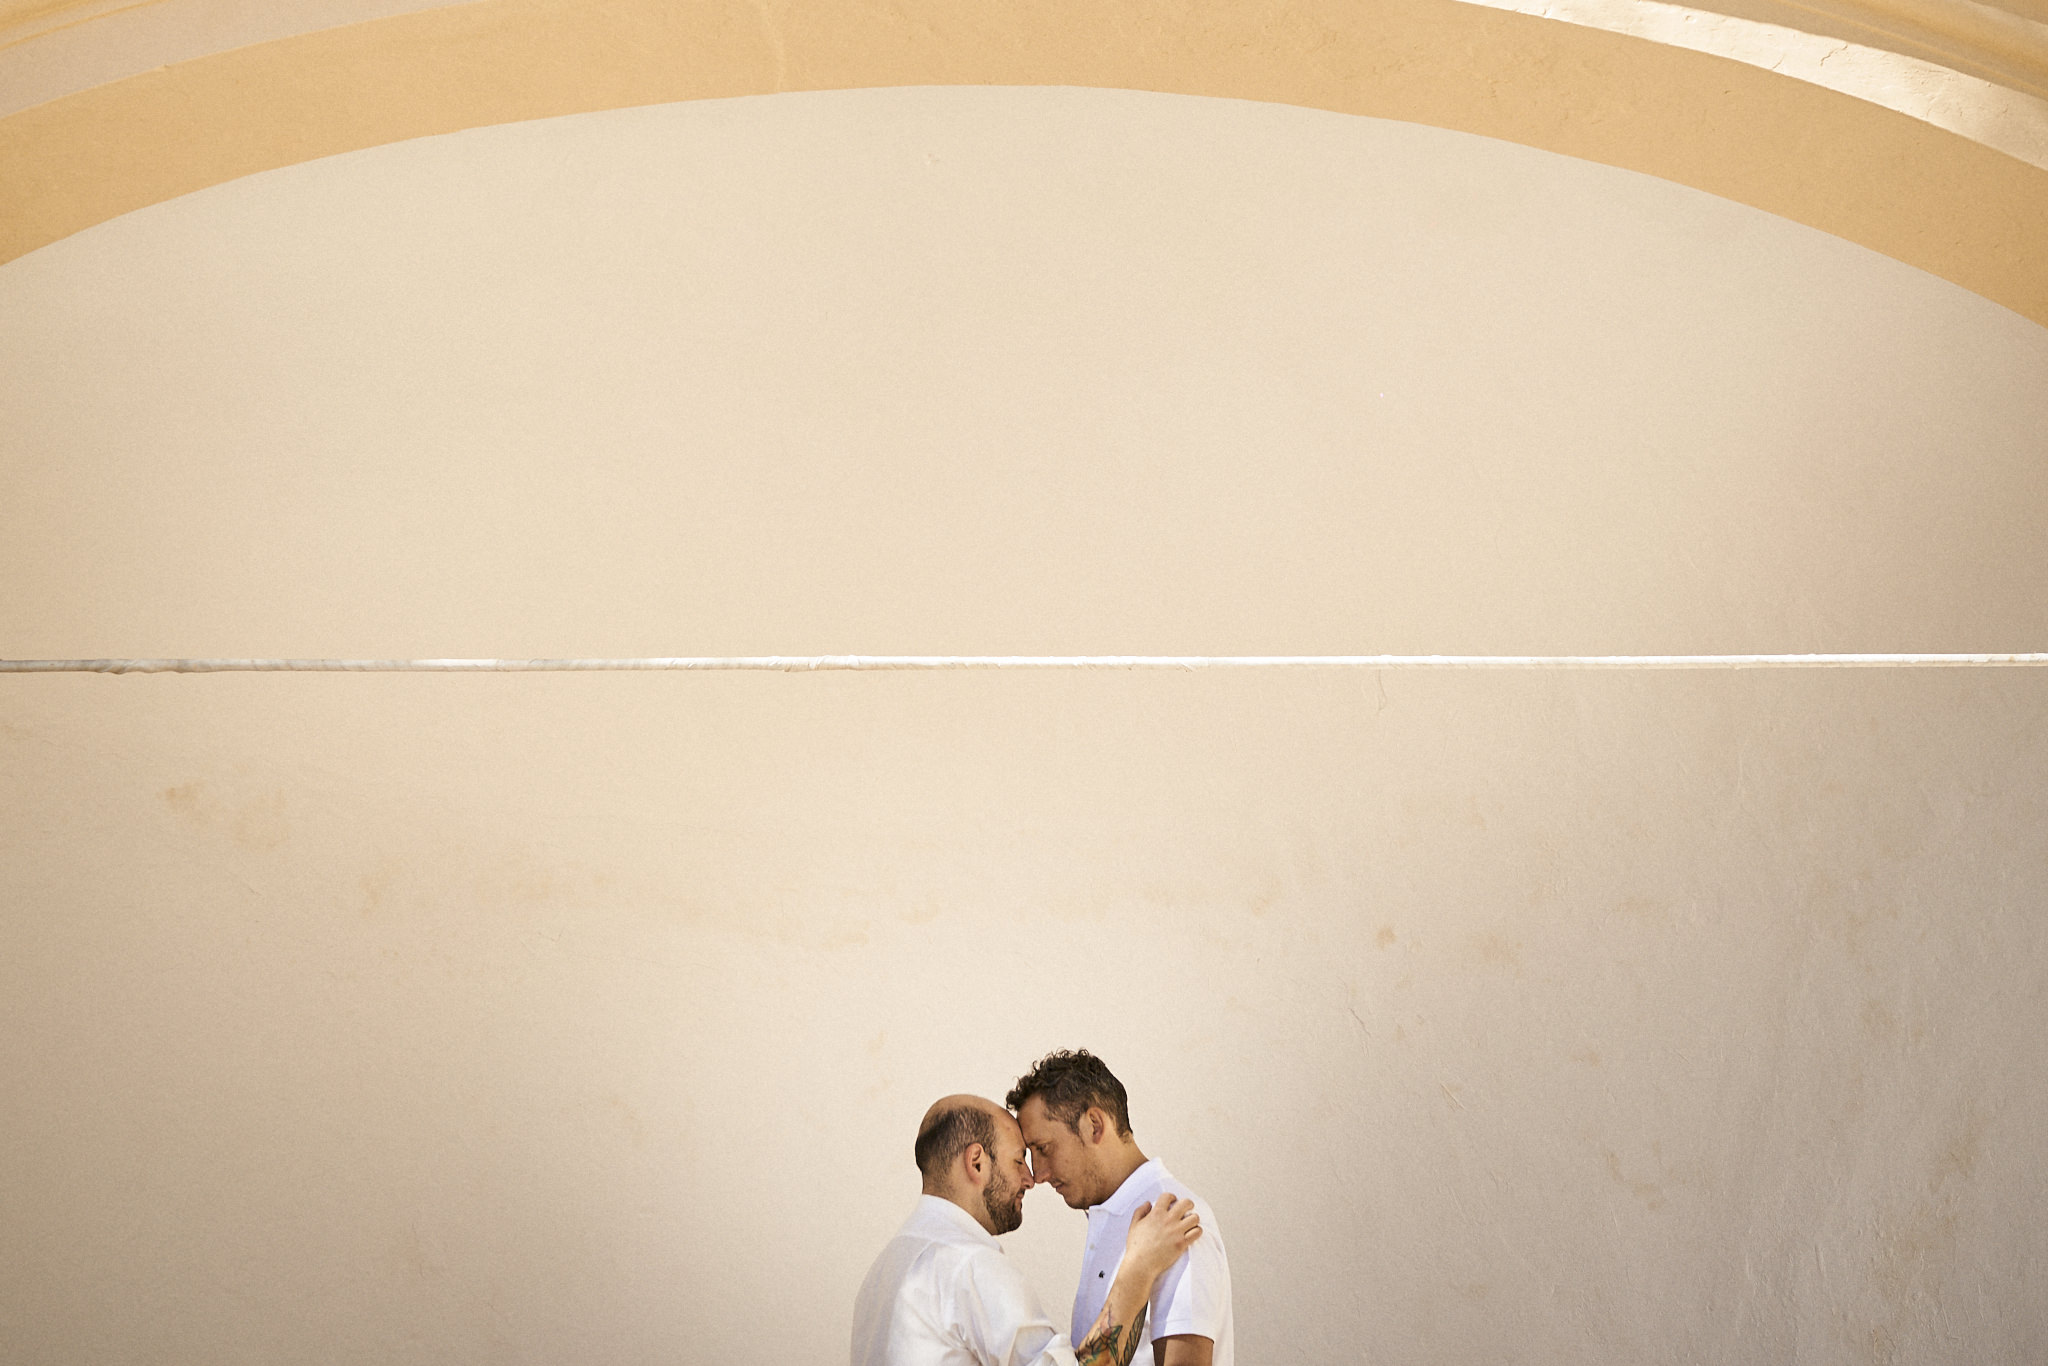 Fotografo de Bodas - Gay Couples - Wedding Photographer LME02355.jpg